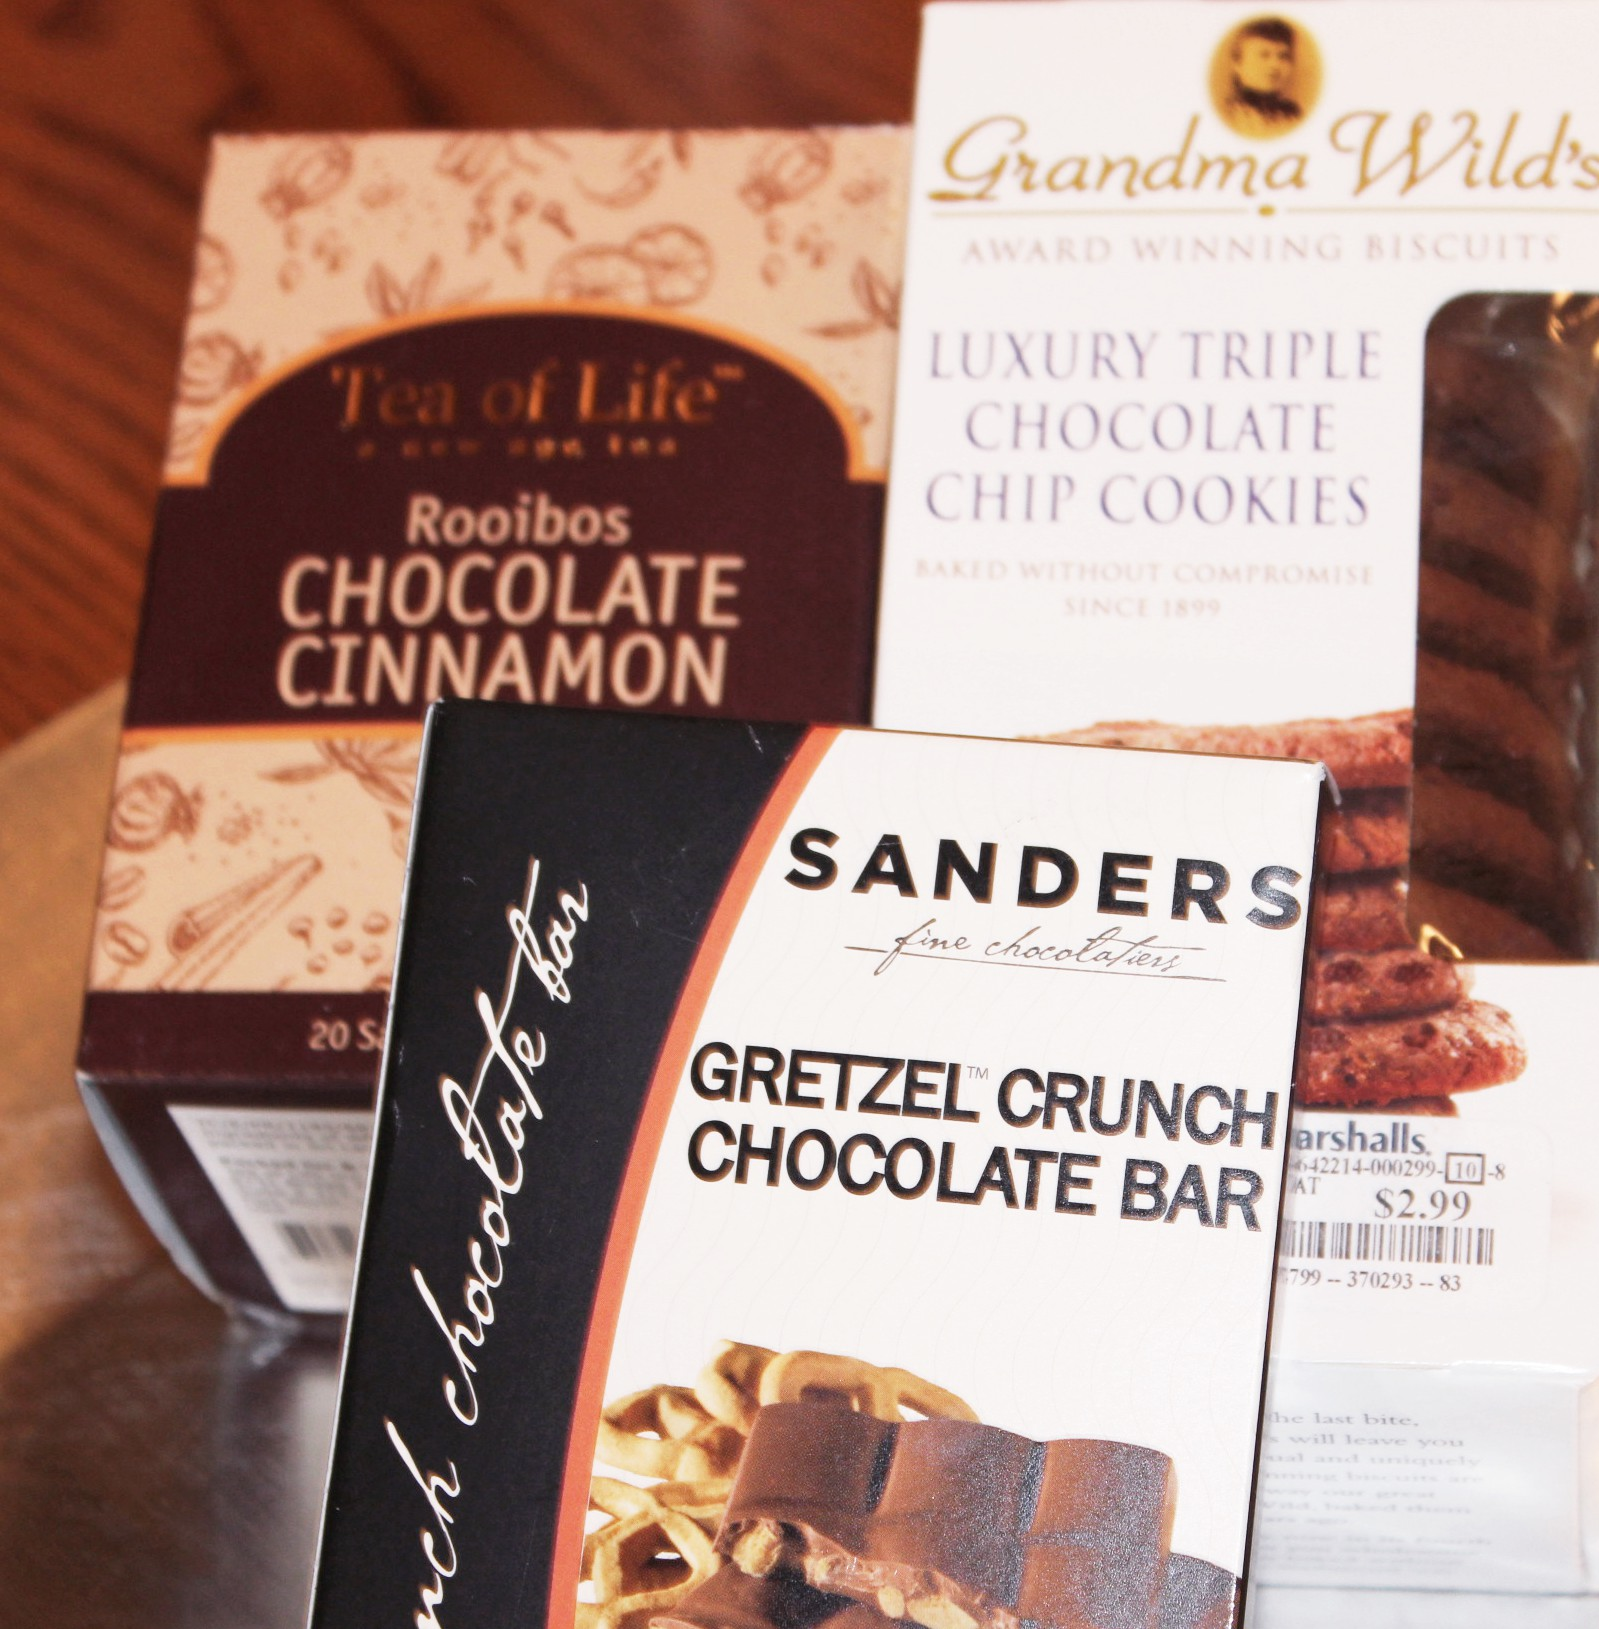 chocolategiftideas